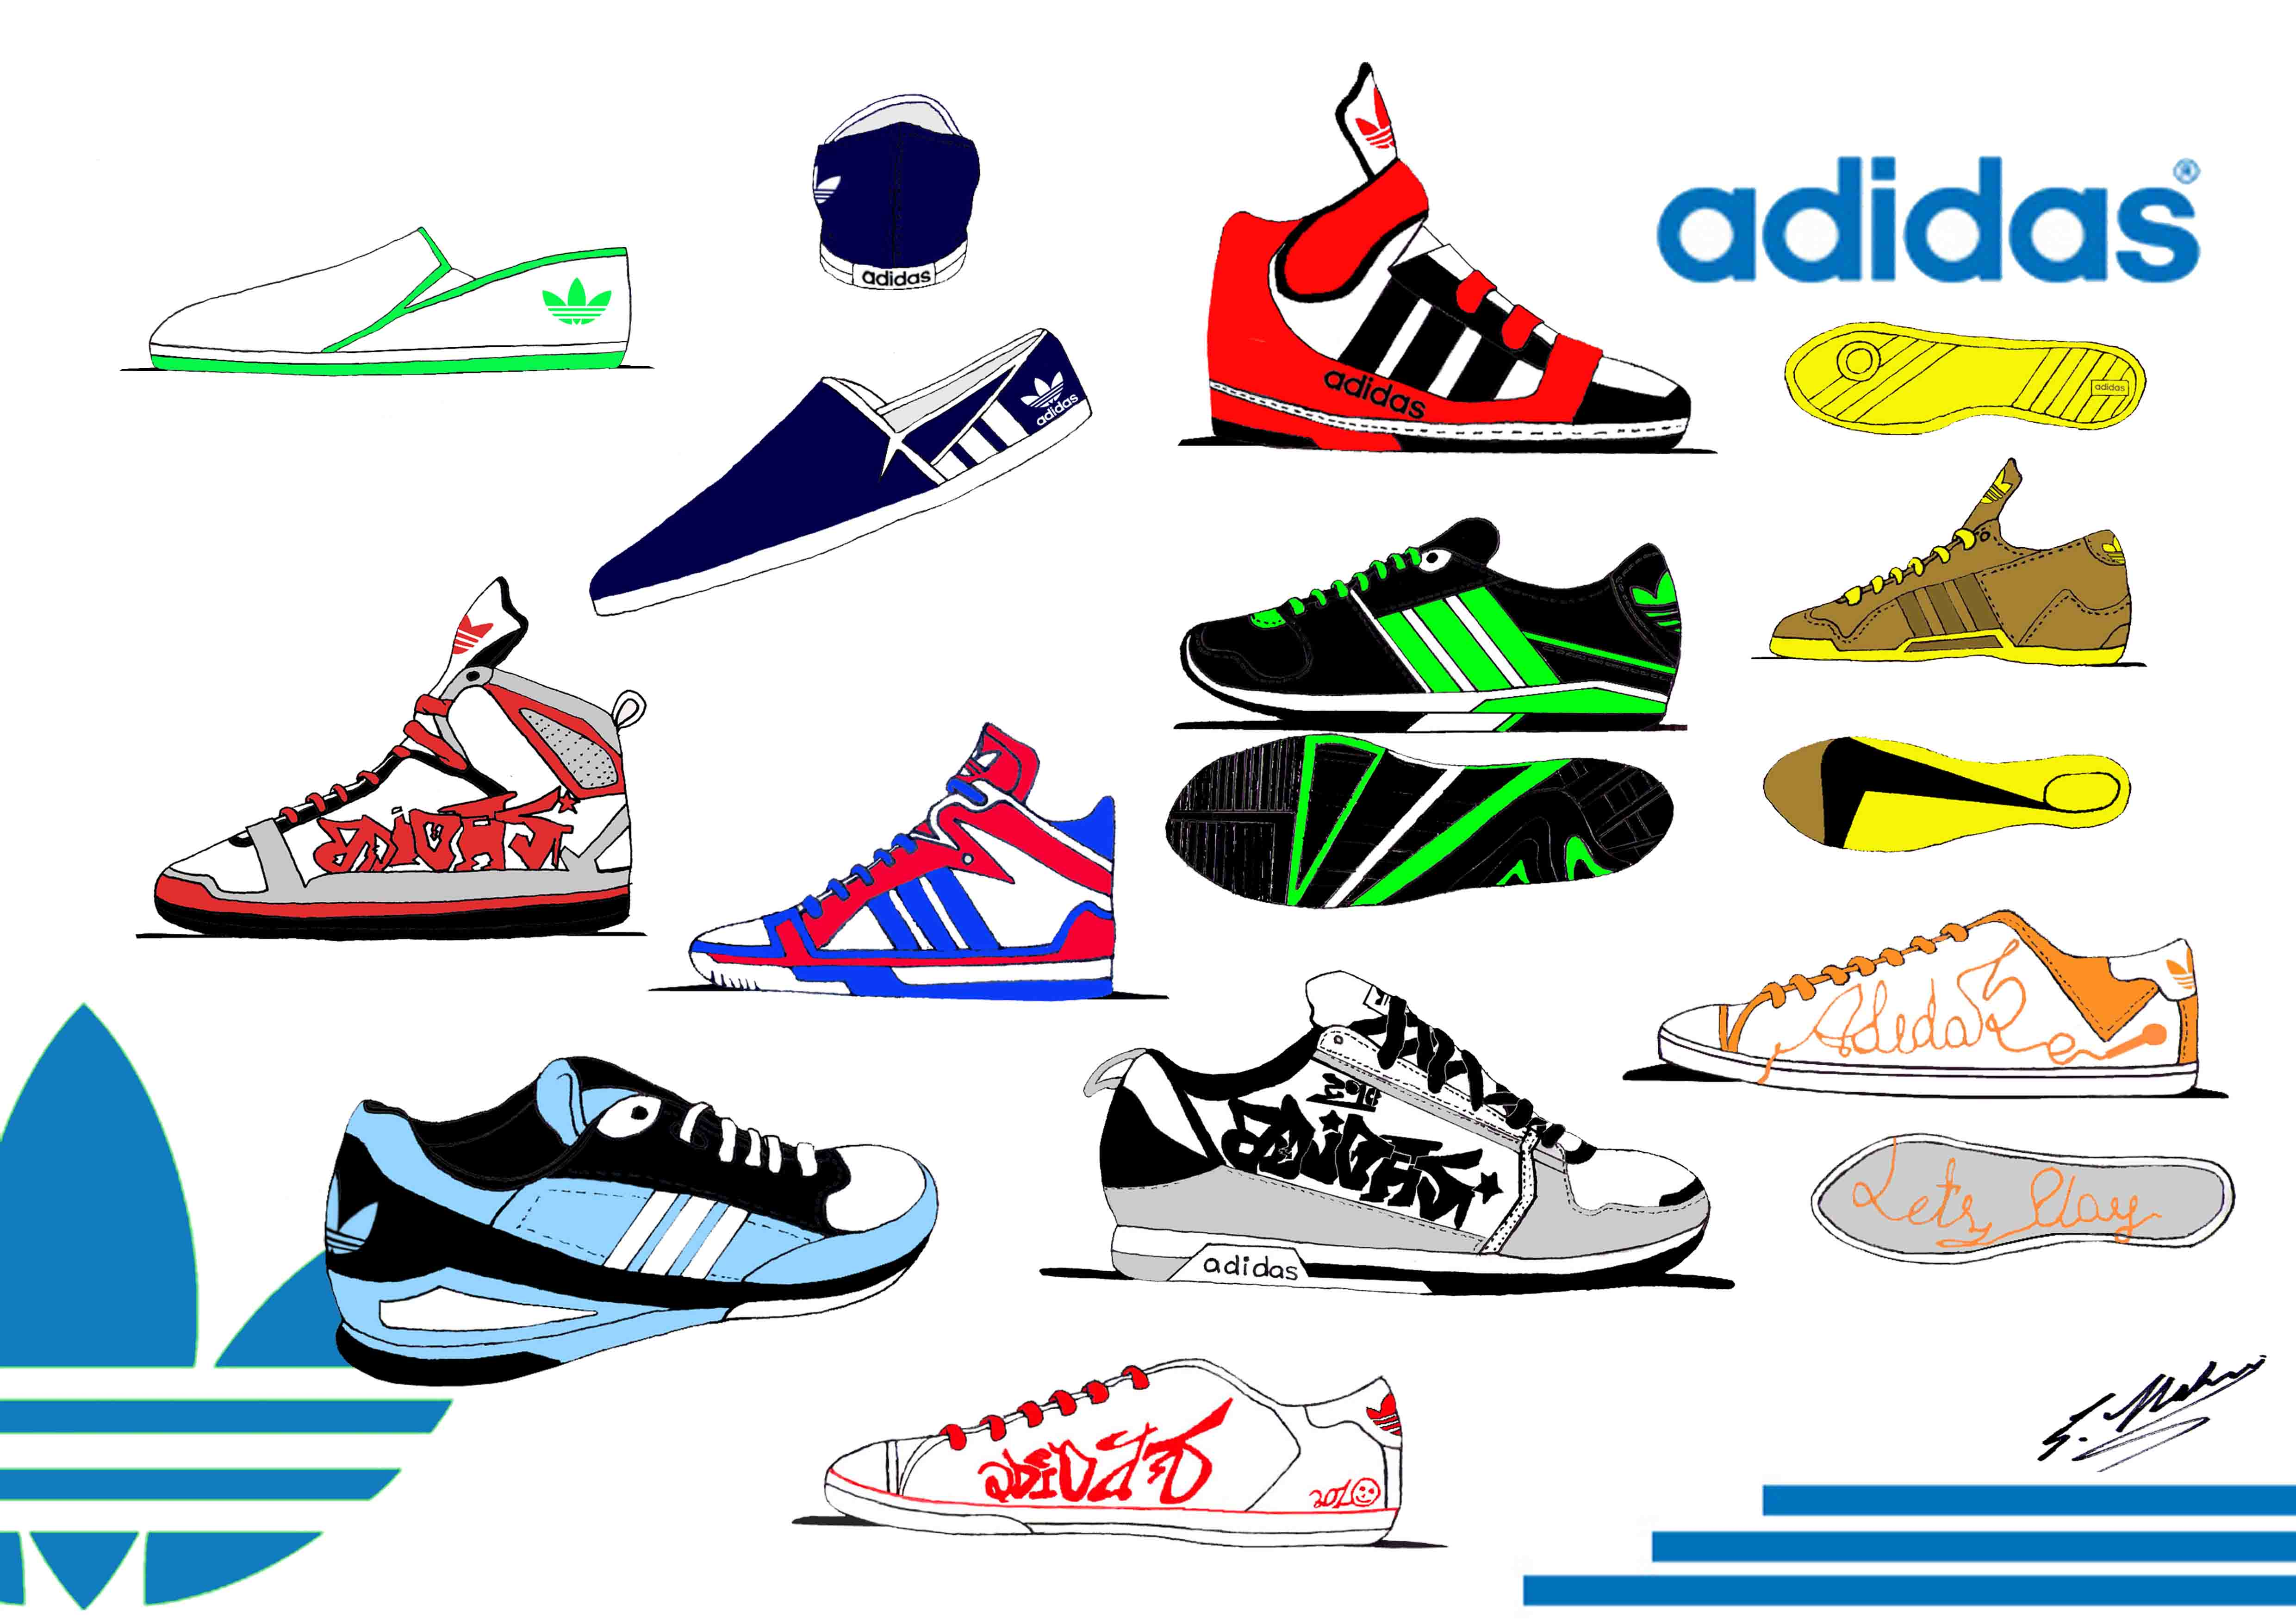 organizational design of adidas It identifies adidas' marketing strategy, continuously improve the quality, look, feel, and image of our products, and adds continuously improve corporate structure it identifies the nature of its relationships with the community at large, its employees and its shareholders: global organization that is socially and.